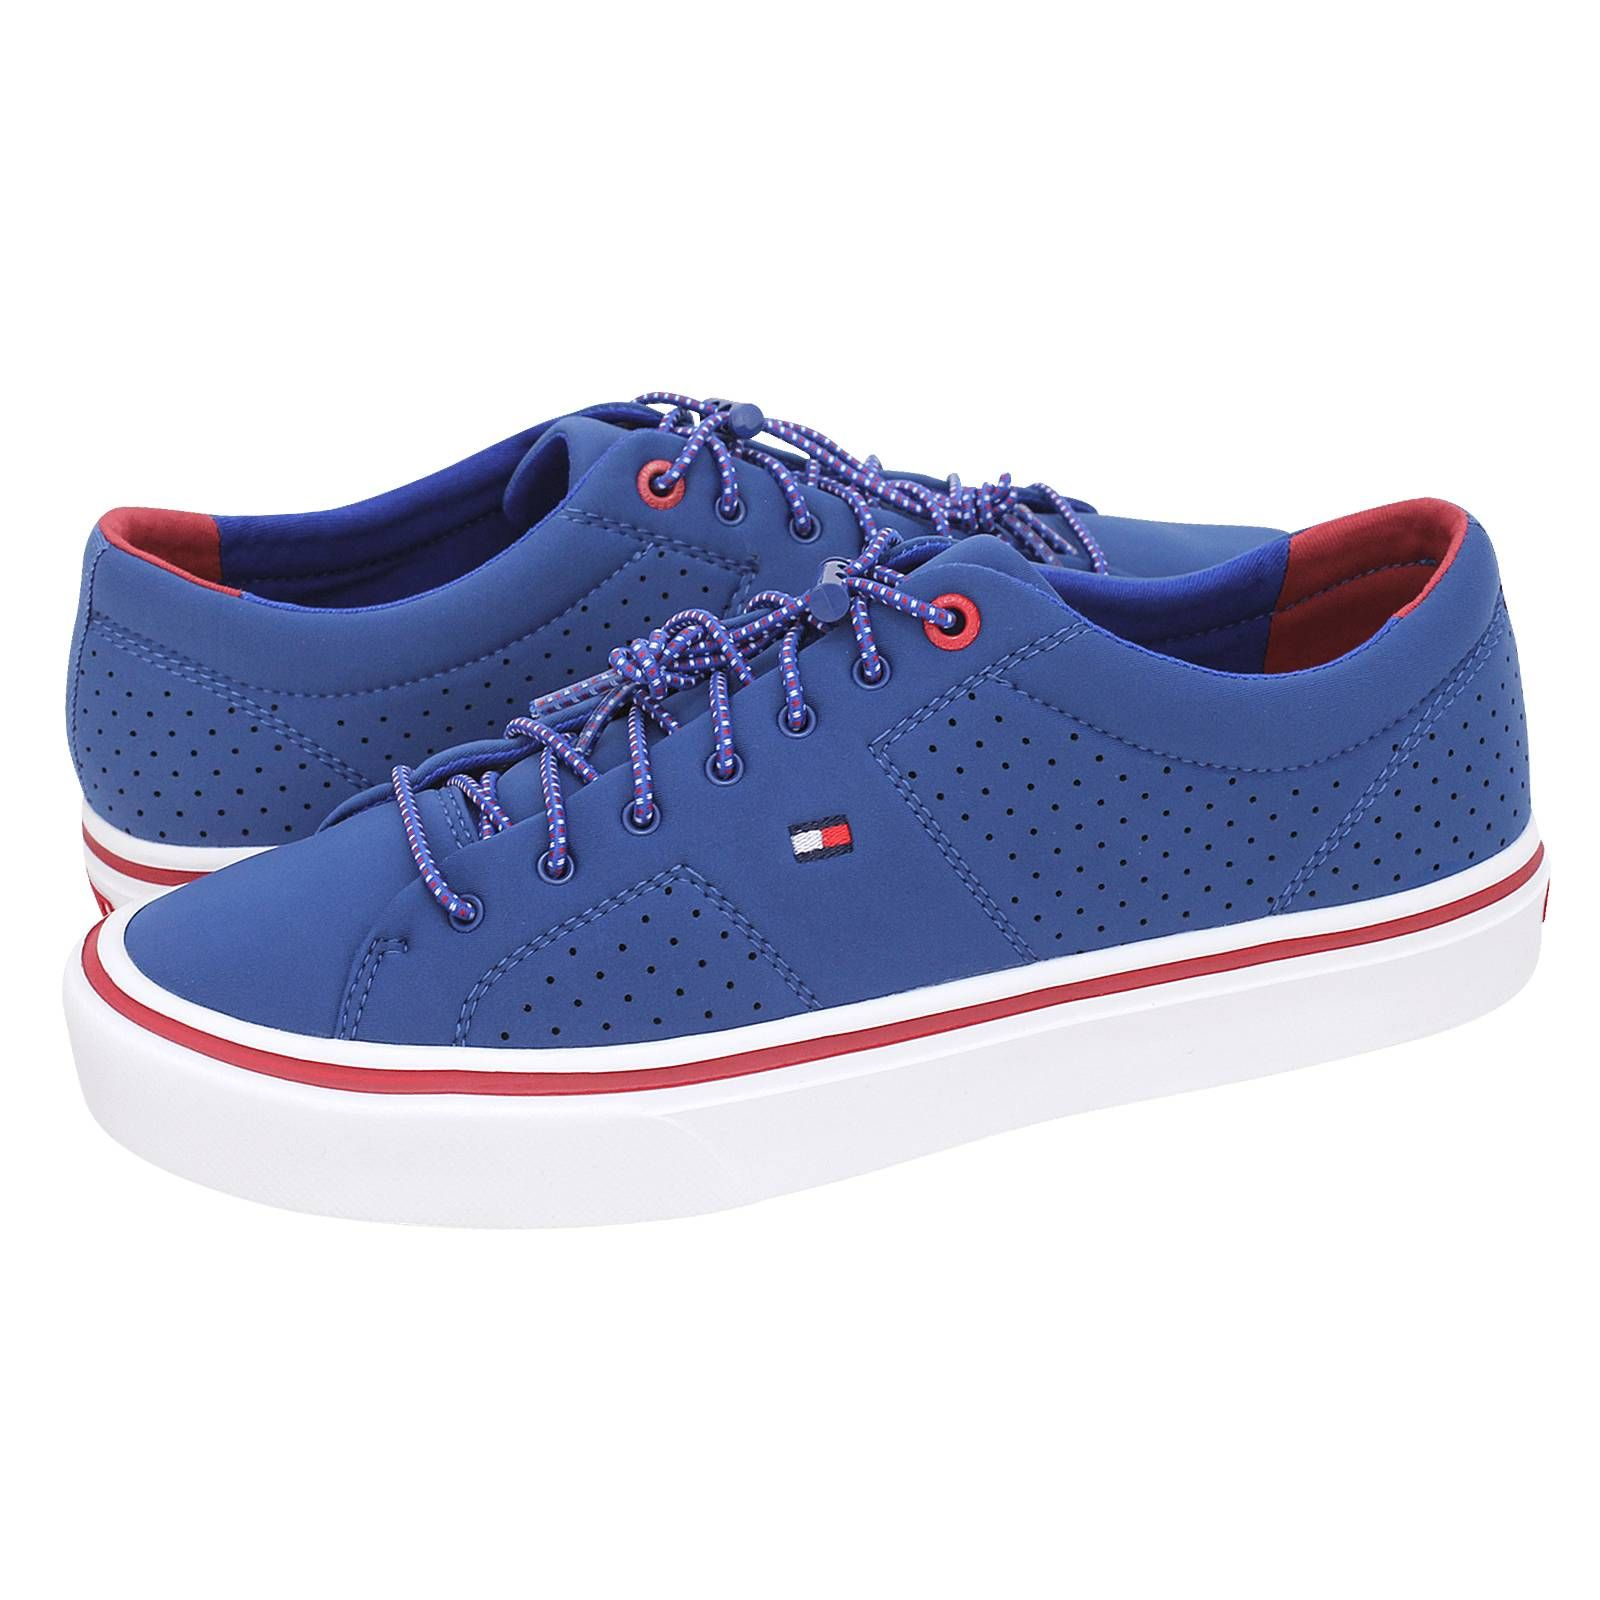 06796694d Tommy Hilfiger Lightweight Neoprene Sneaker casual shoes